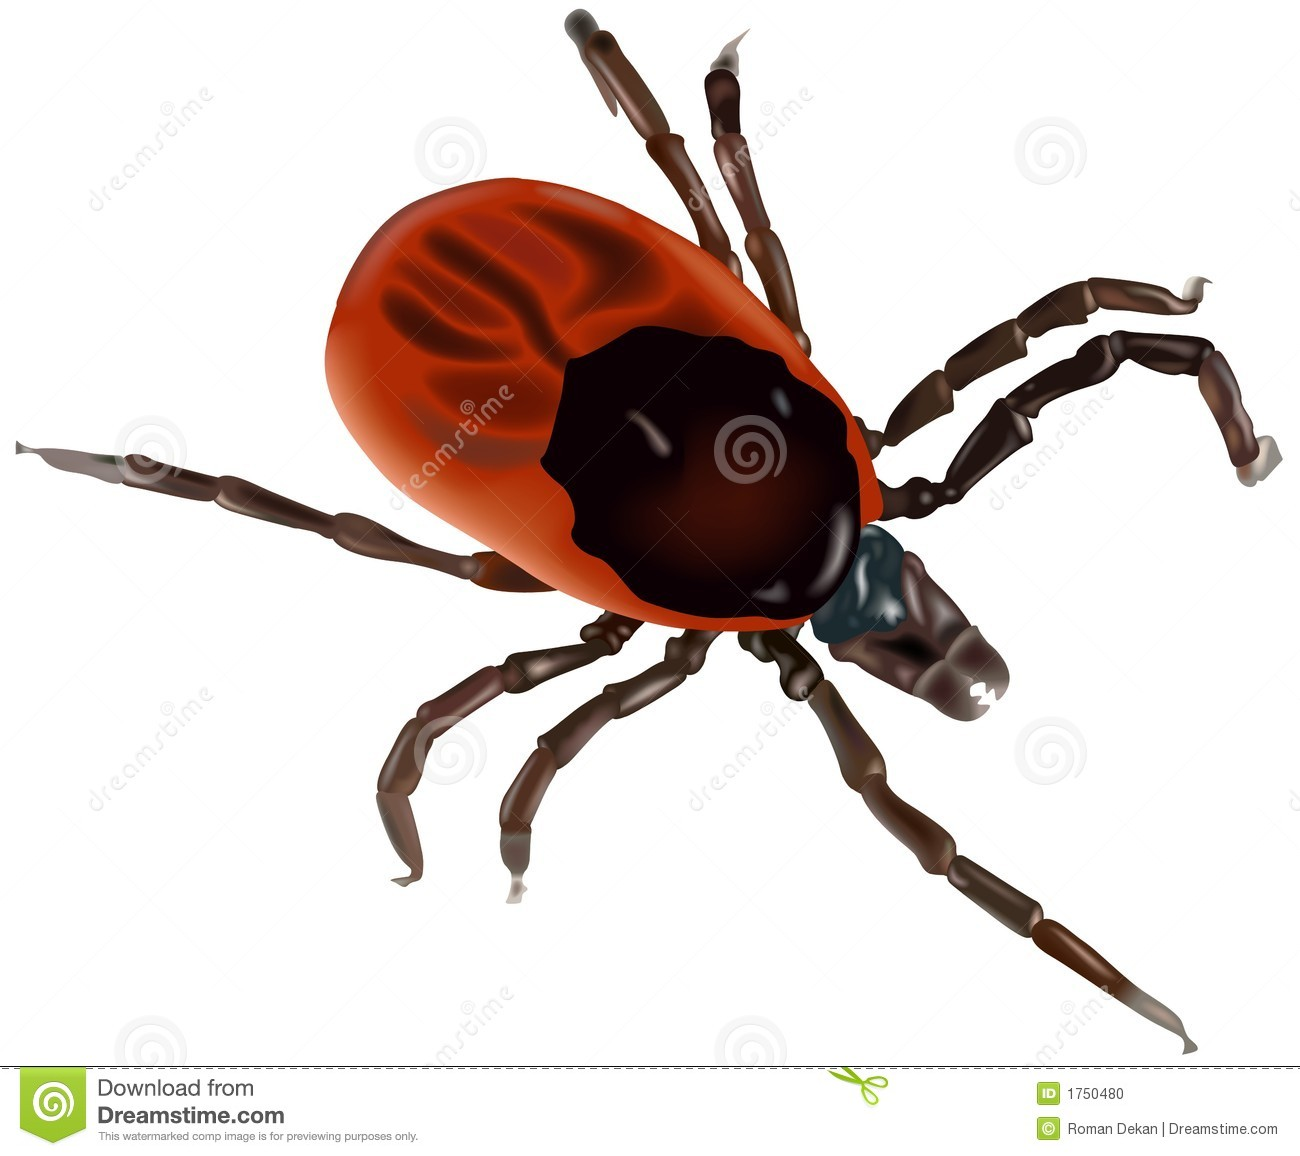 Bug clipart tick. Insect